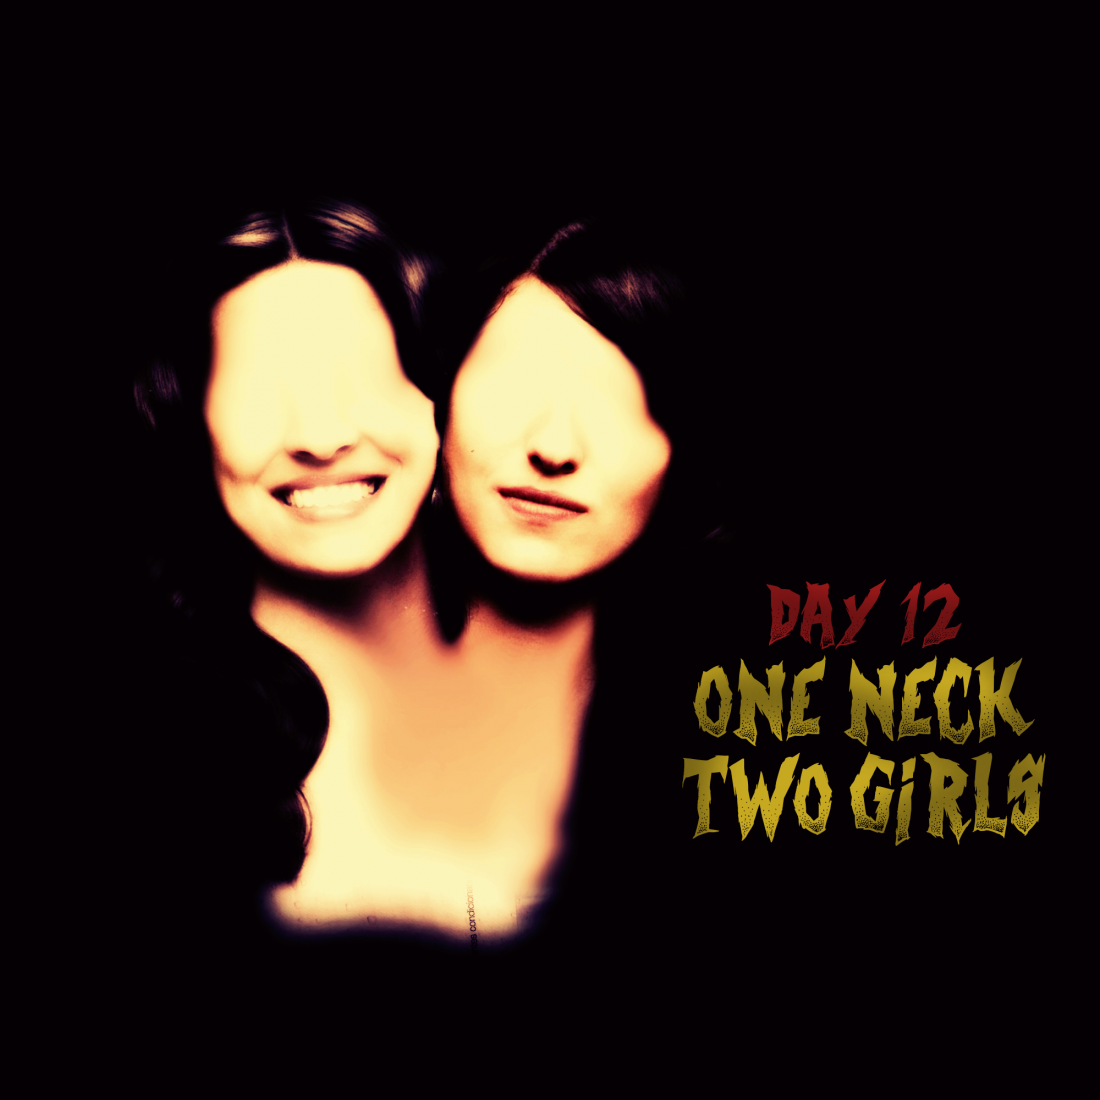 drawlloween-12-one-neck-two-girls